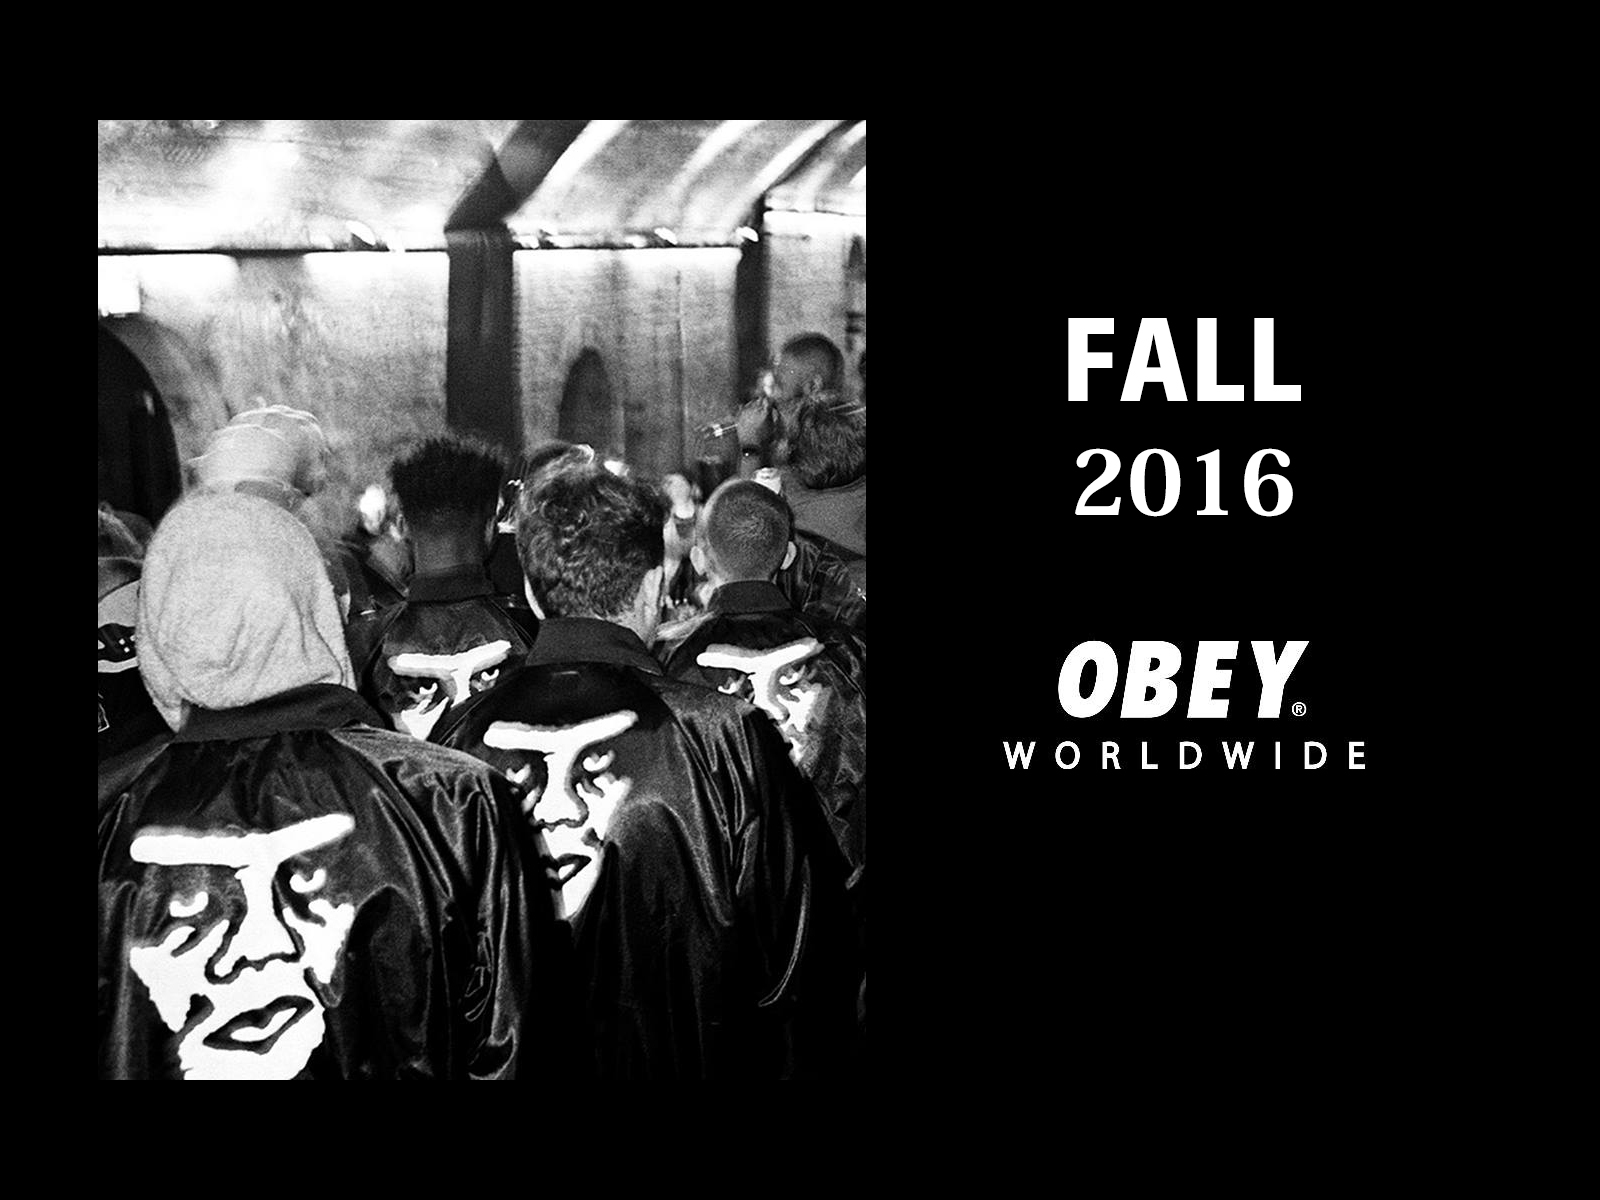 NEW ARRIVALS – OBEY FALL 2016